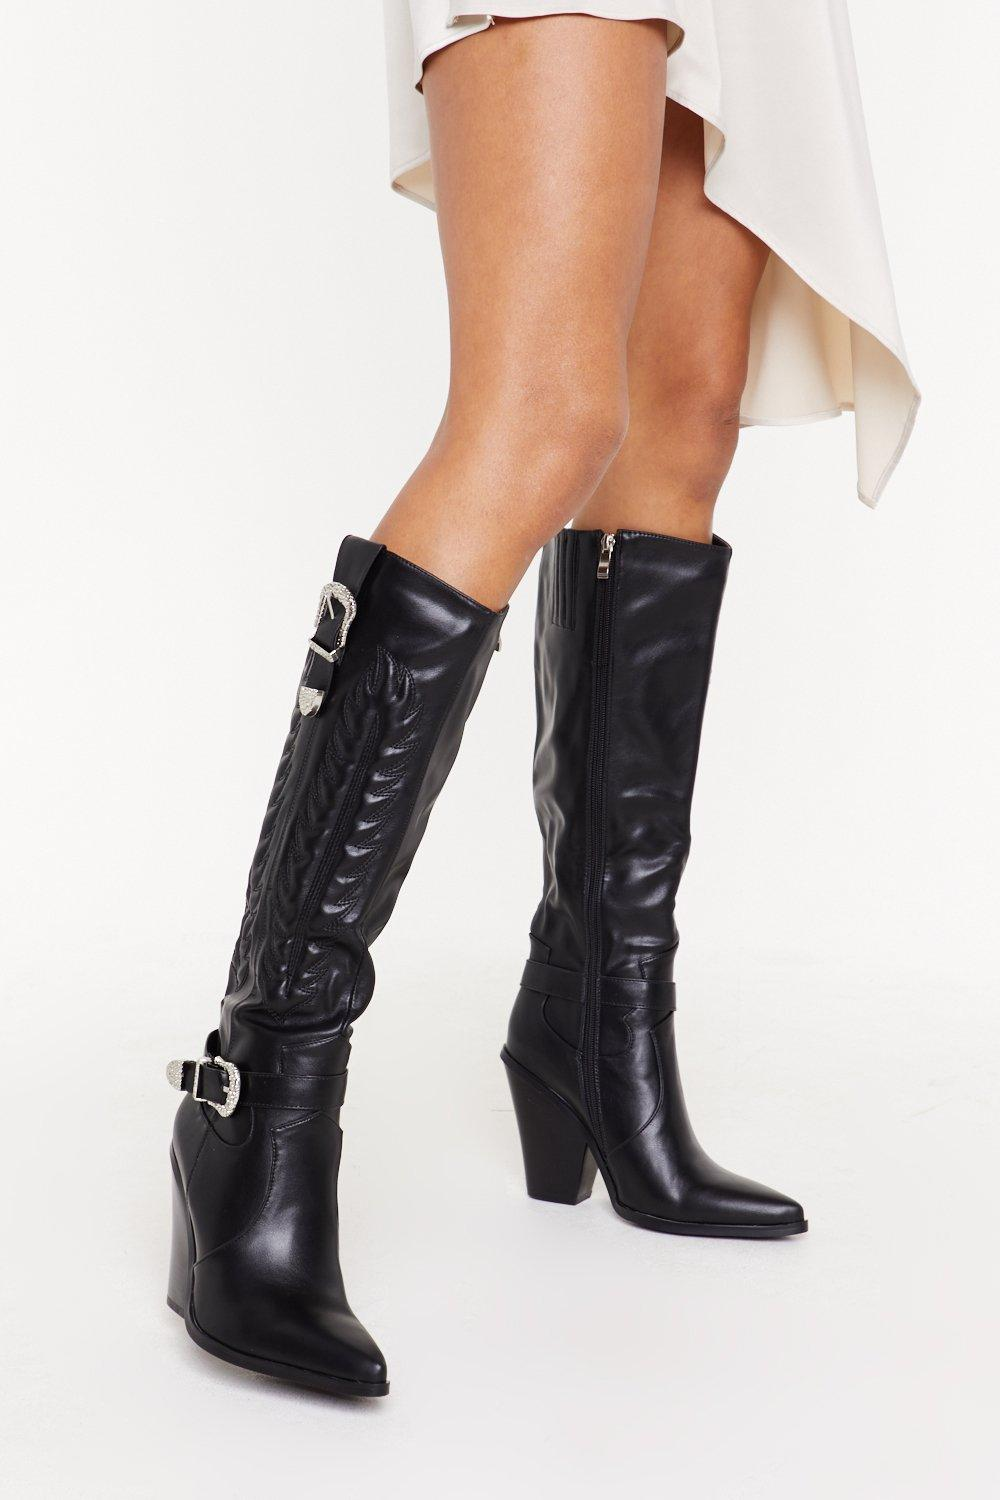 82f4e34f847 Ride With Me Knee-High Cowboy Boots   Shop Clothes at Nasty Gal!